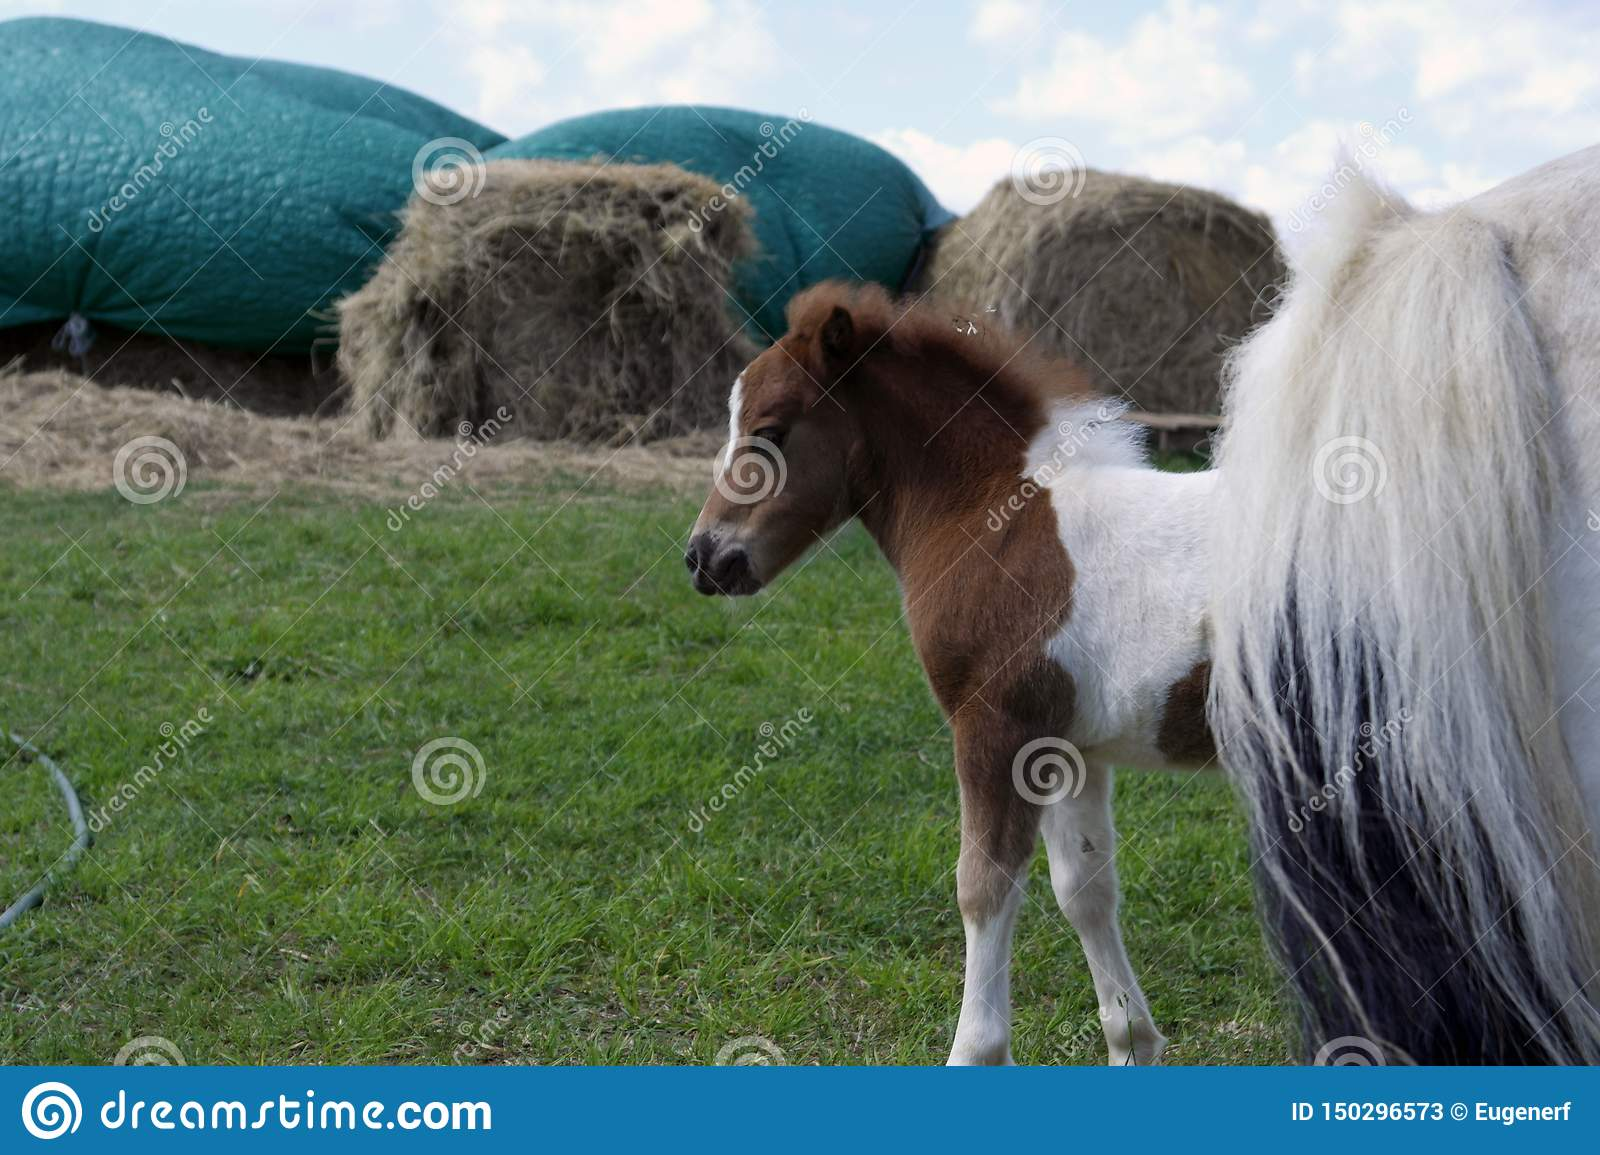 A baby horse at the farm